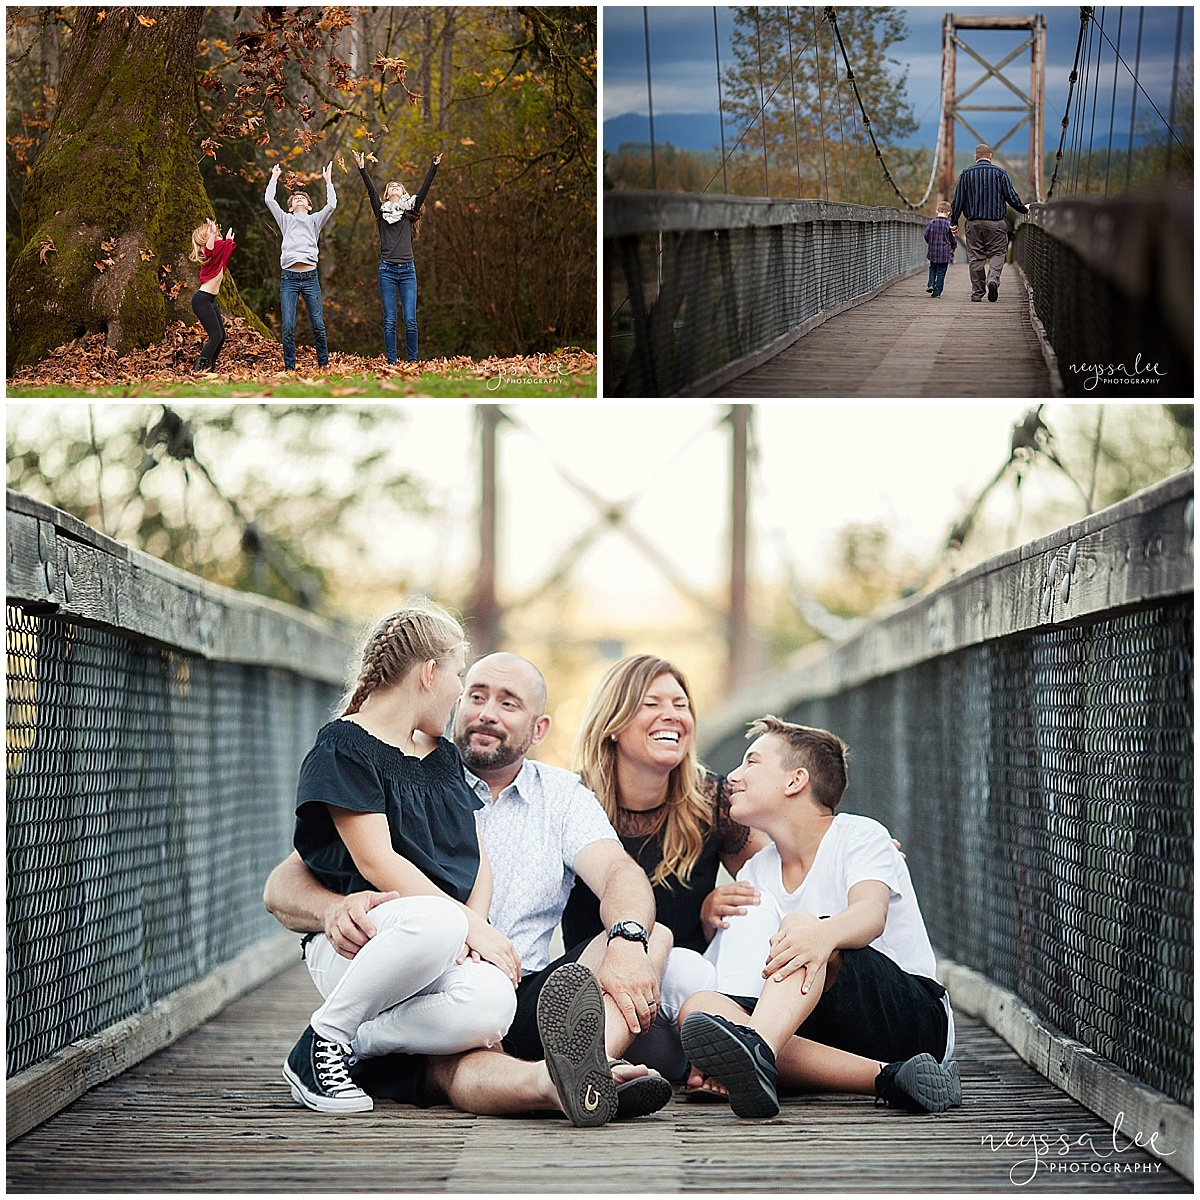 Favorite Locations for Fall Family Photos around Seattle, Neyssa Lee Photography, Snoqualmie Family Photographer, Bridge in Photo